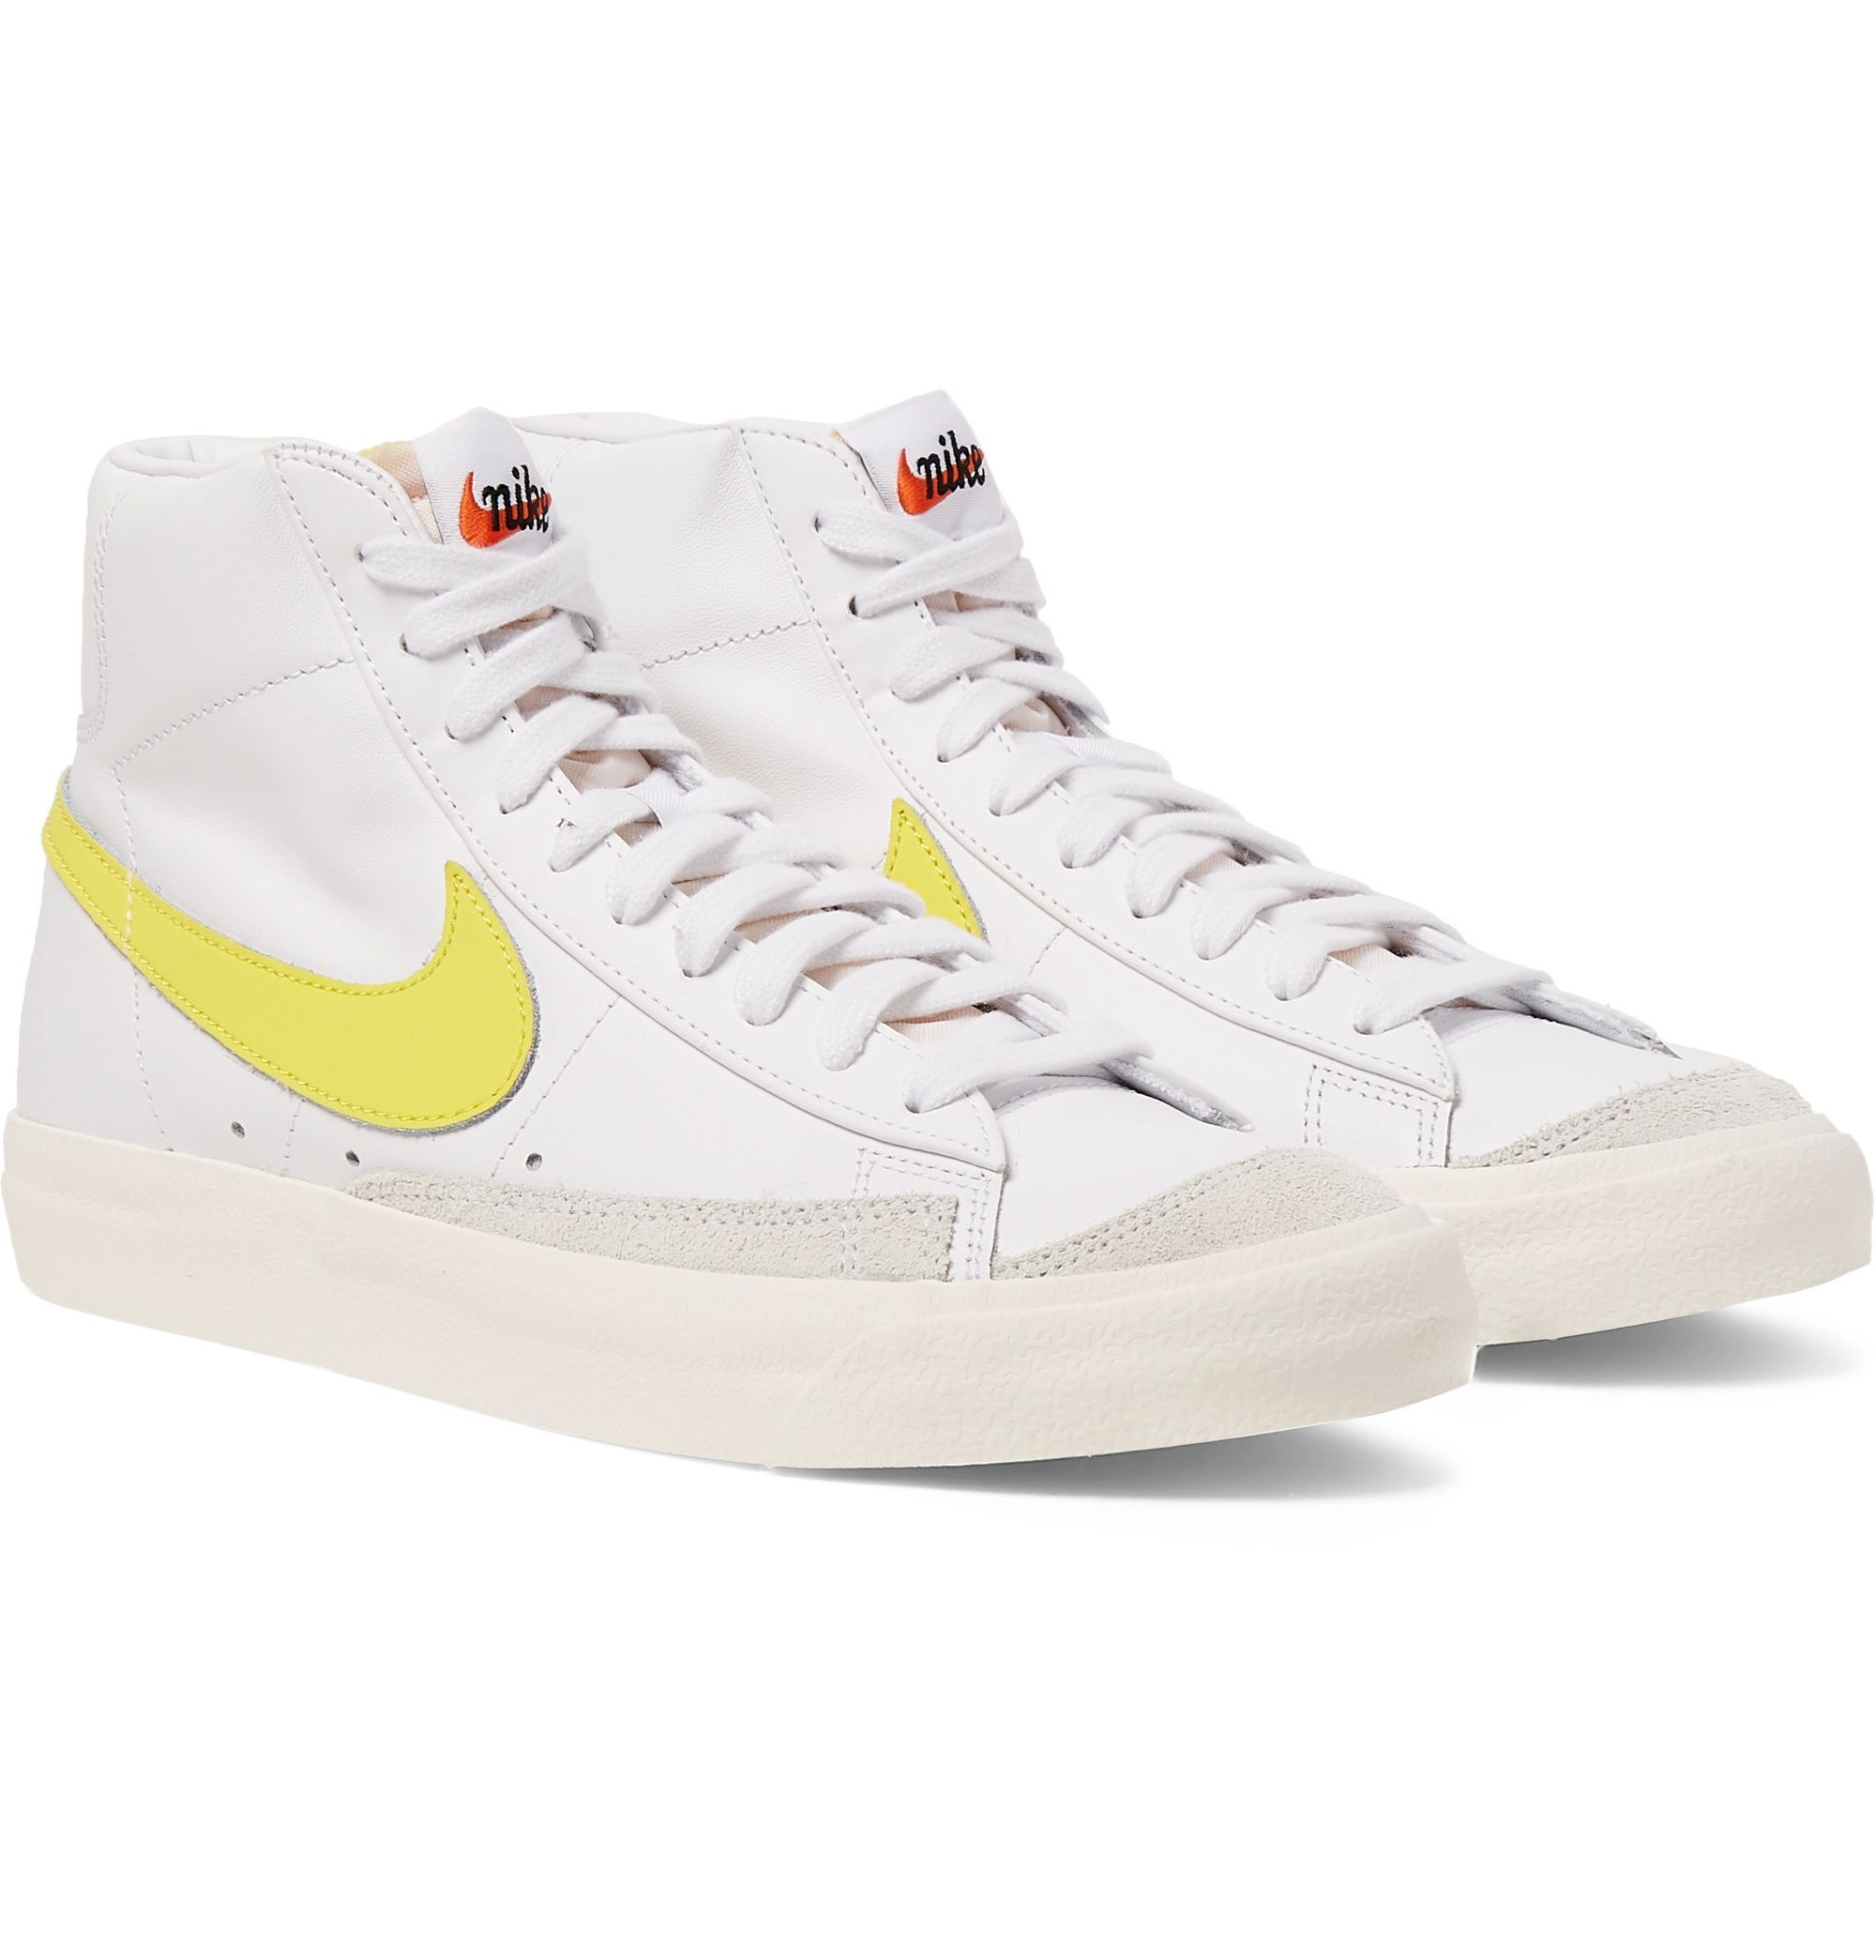 poco Regenerador familia  Taking inspiration from the design and silhouettes of '70s basketball shoes,  Nike's 'Blazer' high-tops… in 2020 | High top sneakers, Leather high tops, Leather  sneakers men